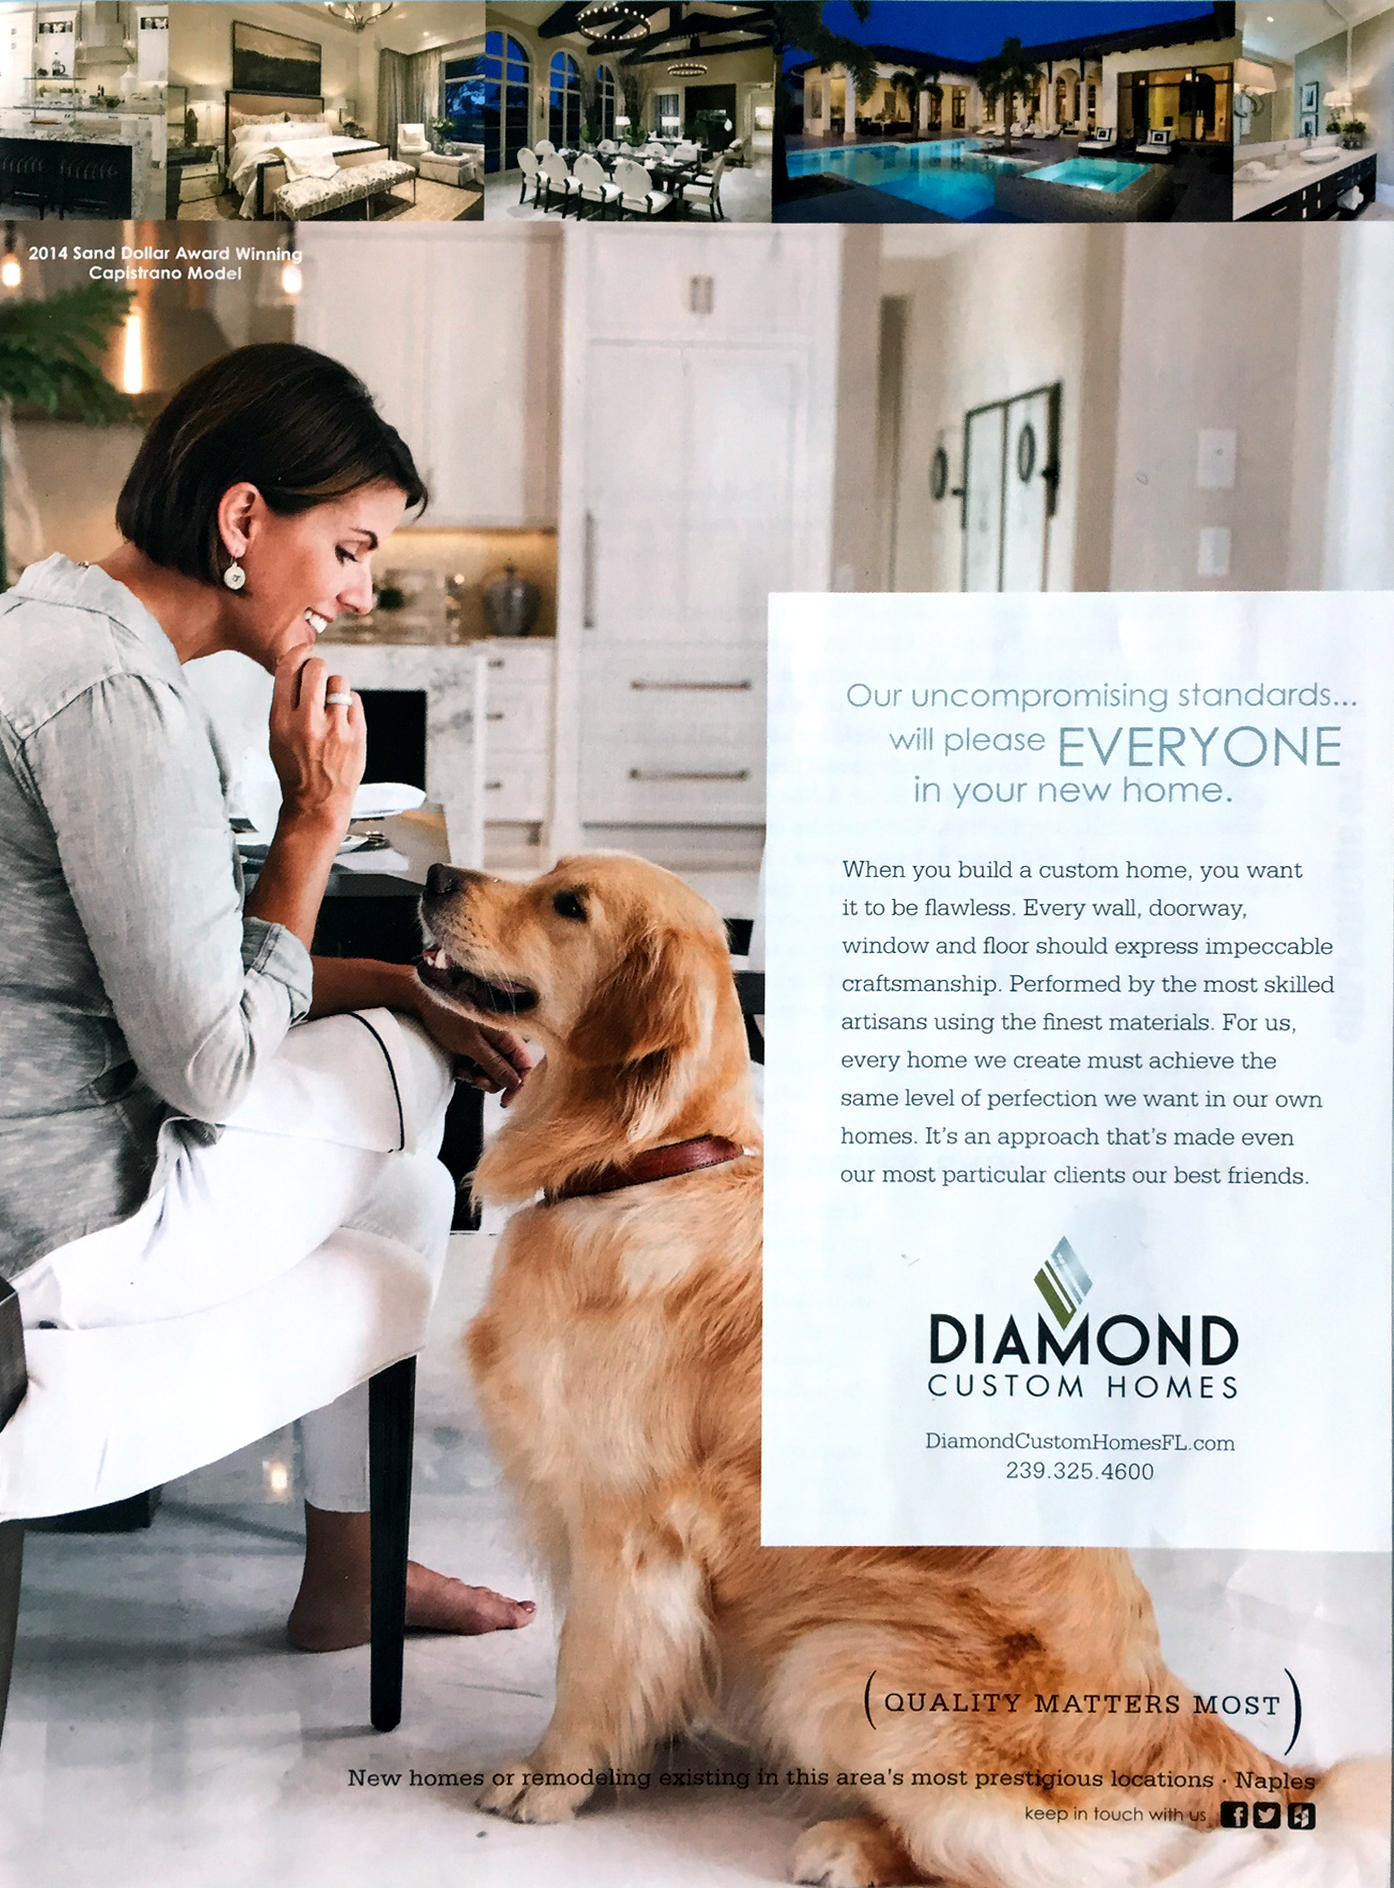 Diamond_customs_homes_advertisement_photographed_by_vanessa_rogers